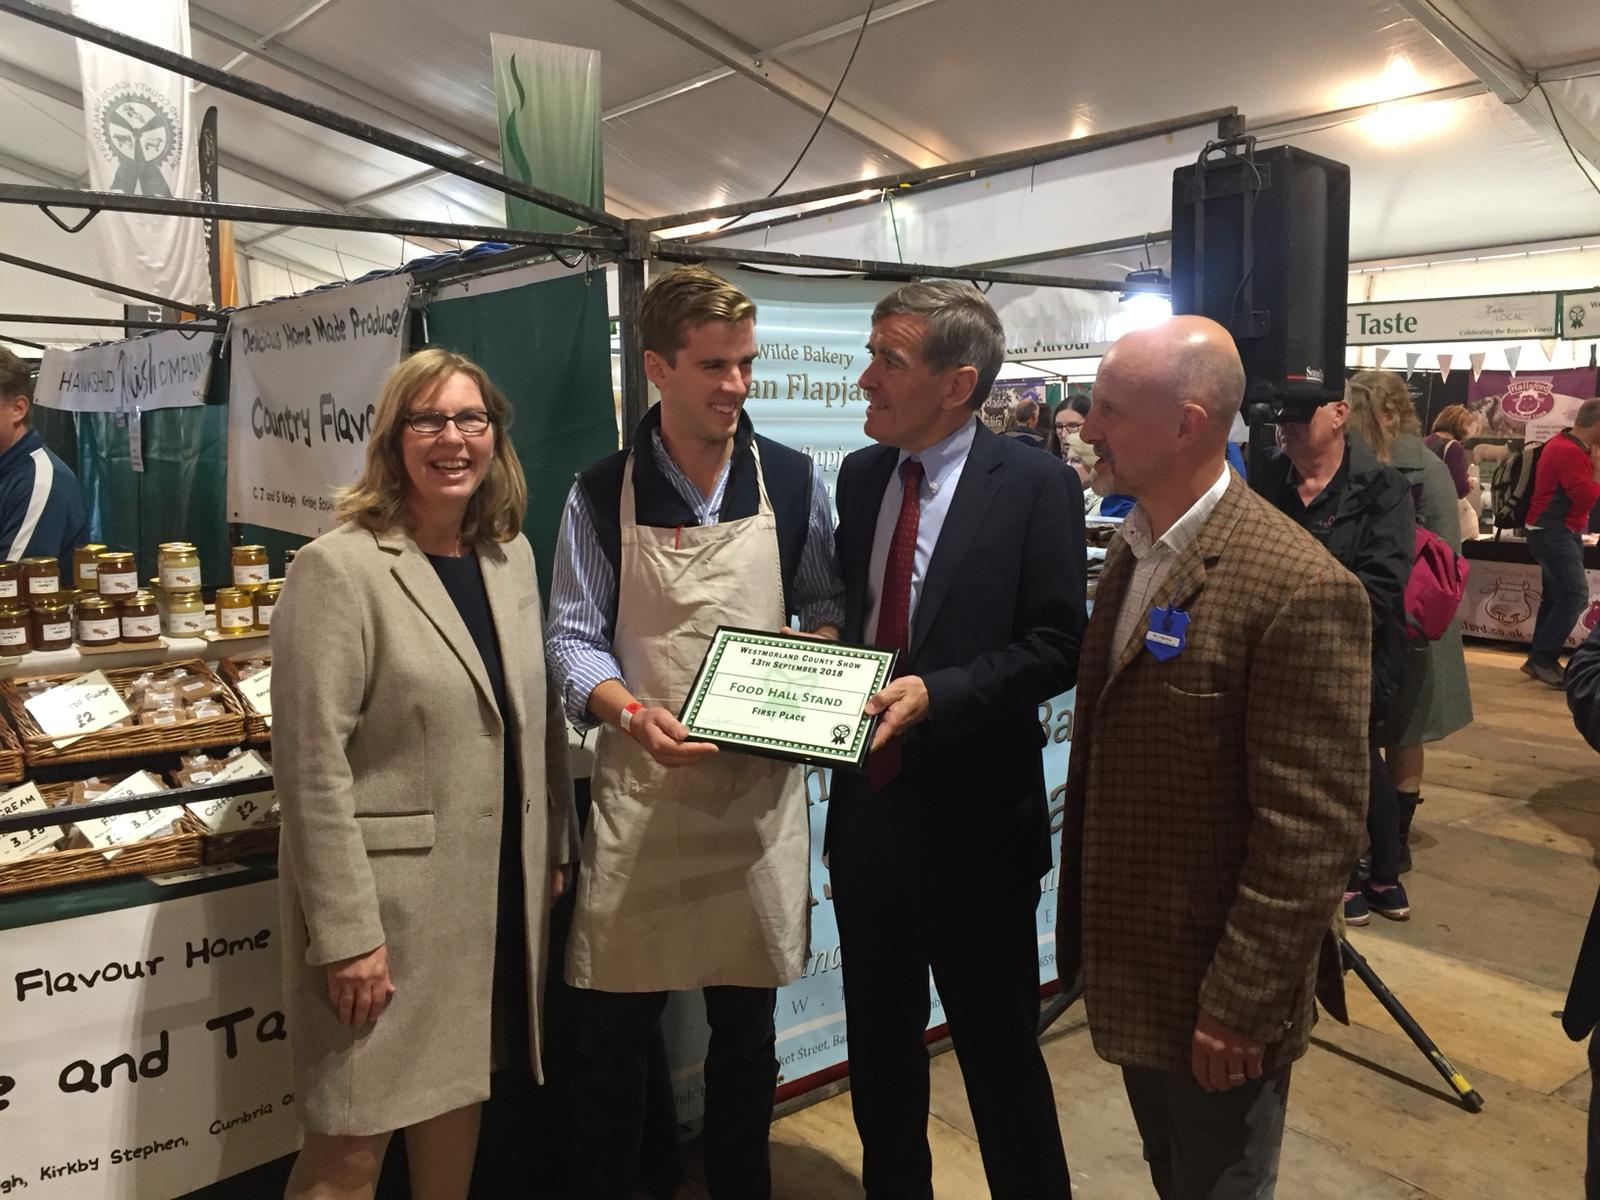 An image of Defra Minister David Rutley meeting farmers and food producers at Westmorland Show. He is holding a 'first place' sign.